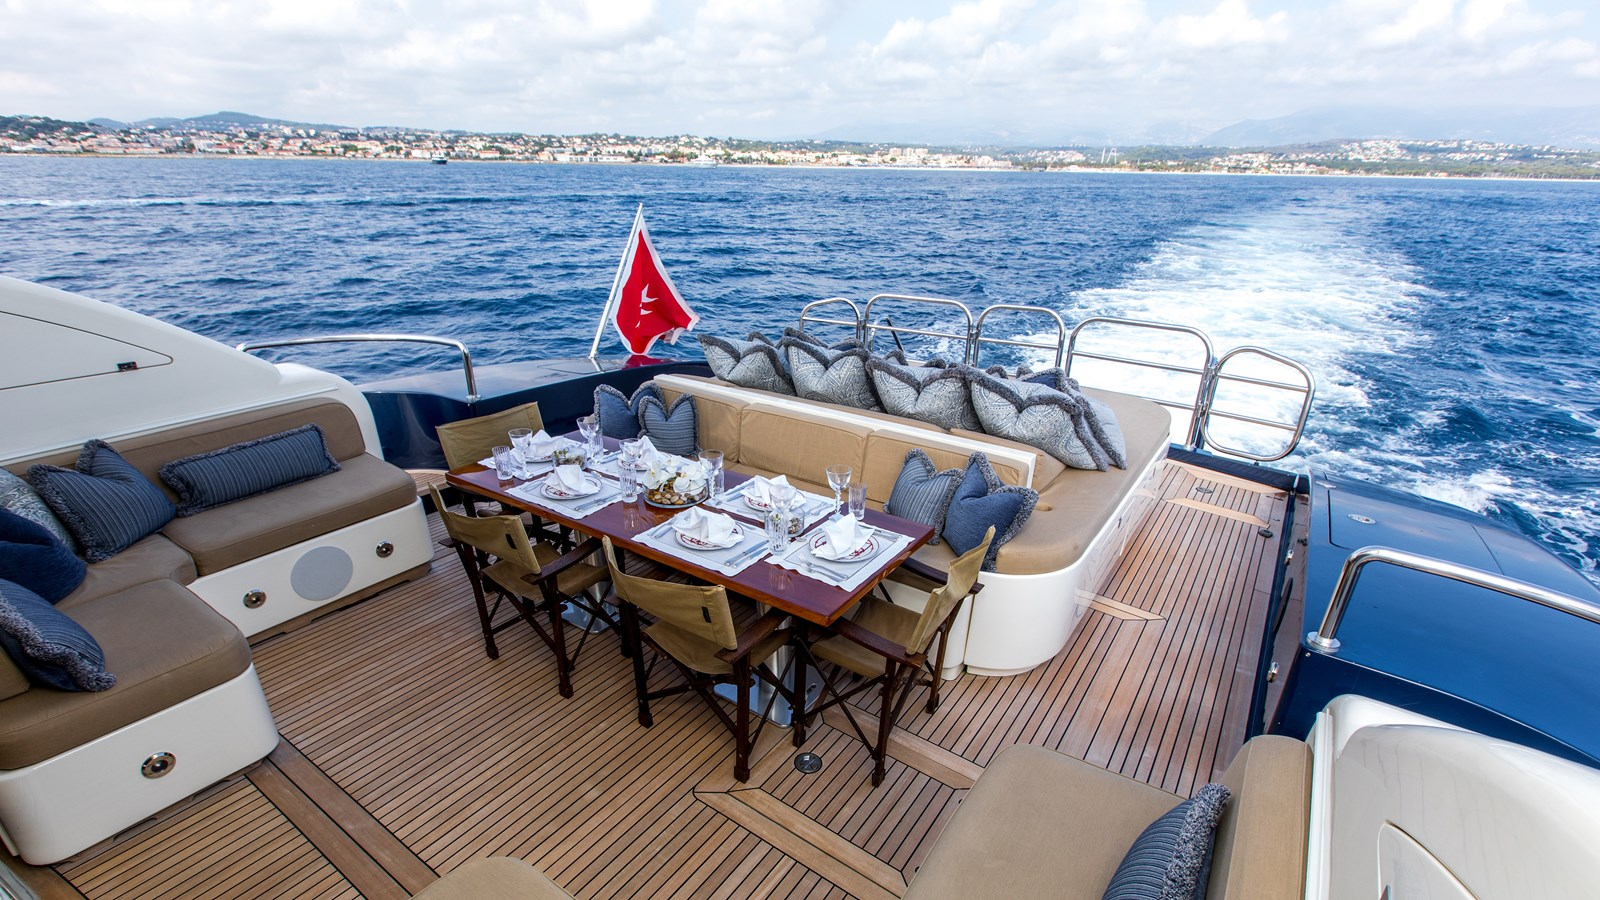 Cheeky-Tiger-Luxury-Yacht-18 2004 LEOPARD  Motor Yacht 2726716